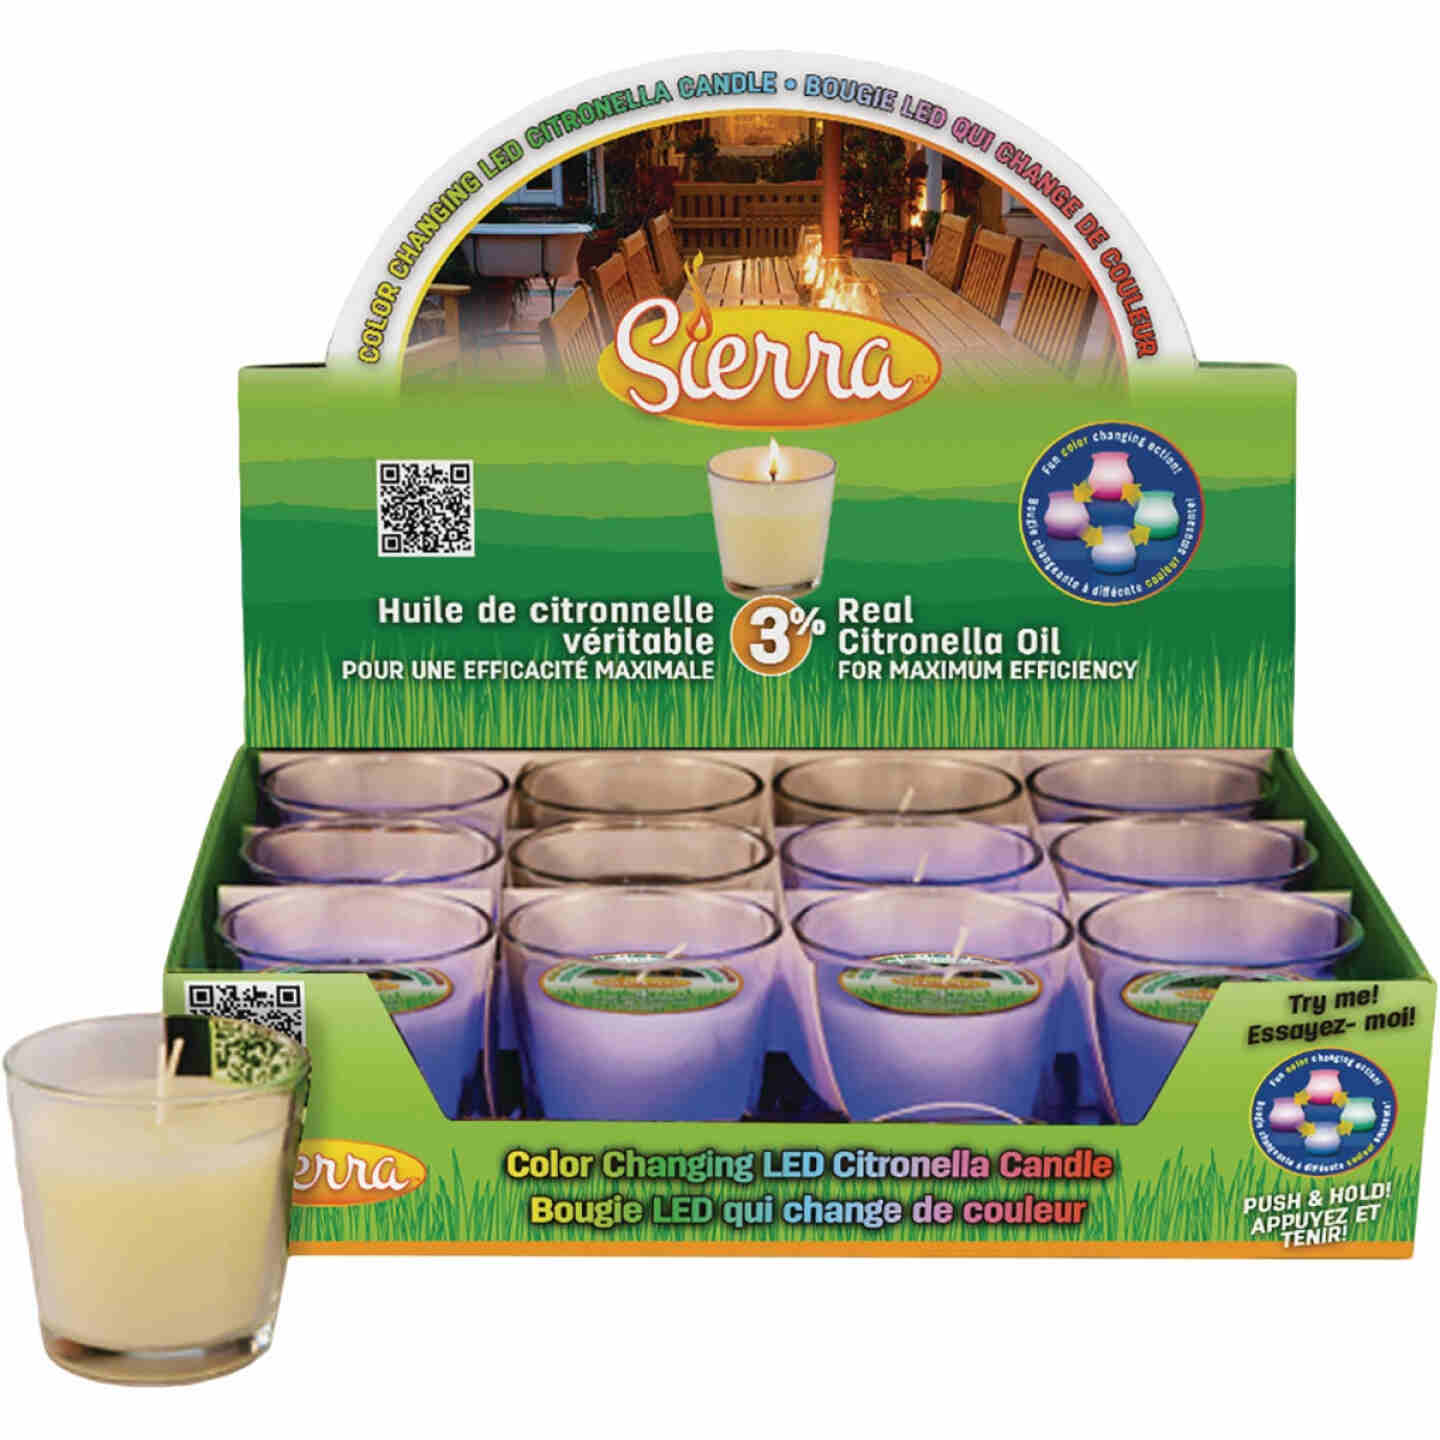 Sierra 4.2 Oz. 1-Wick LED Color Changing Citronella Candle Image 1